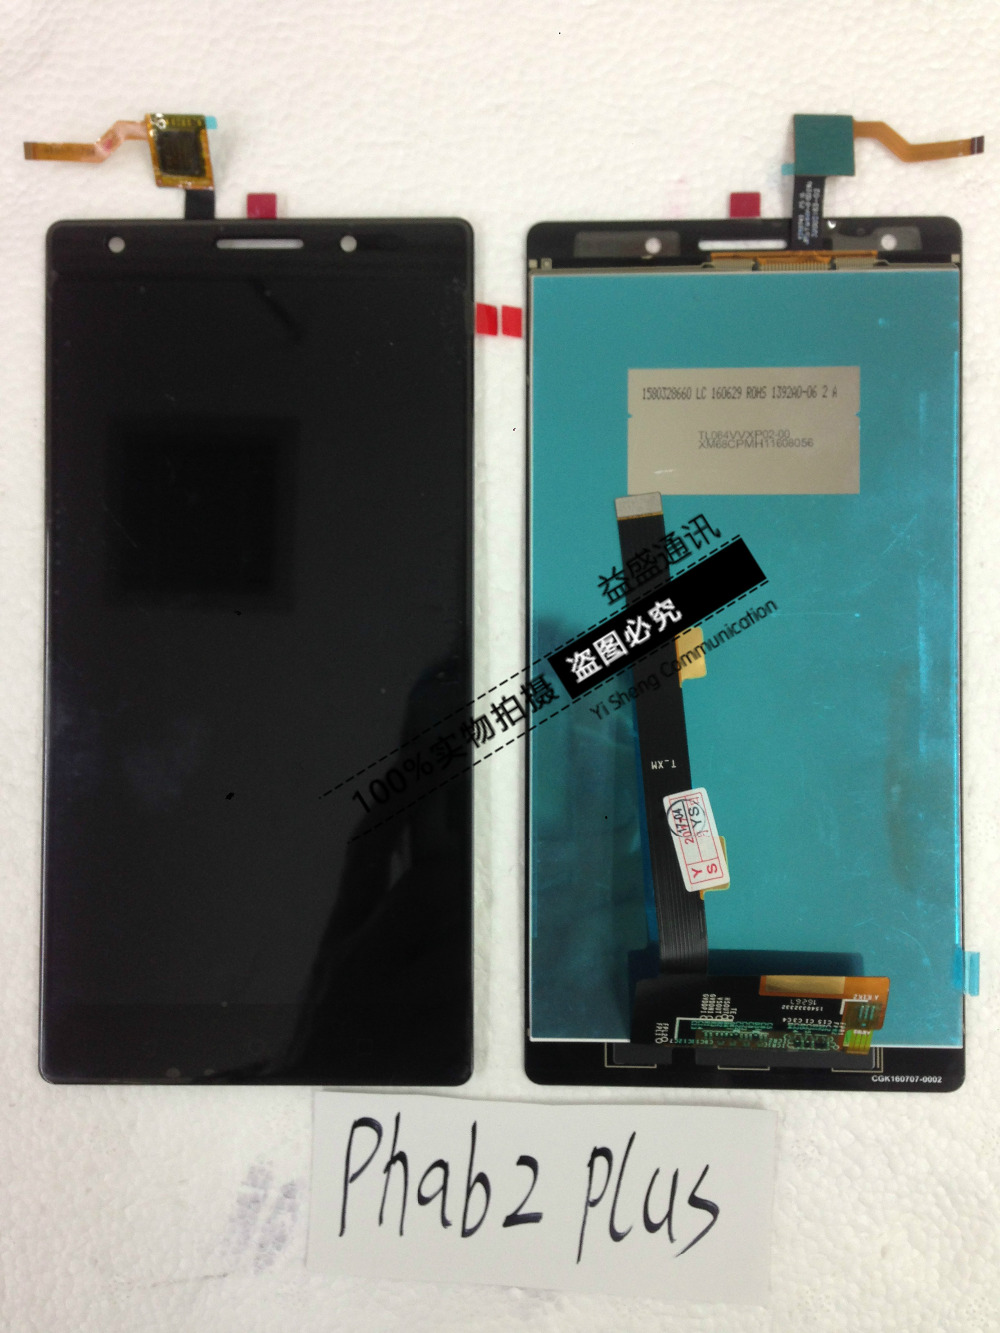 6.4inch For Lenovo PHAB 2 Plus LCD Display and Touch Screen 100% Original Screen Digitizer Assembly Replacement+Tools+Adhesive 100% original for lenovo p780 lcd display touch screen digitizer assembly replacement warranty tempered glass adhesive tools